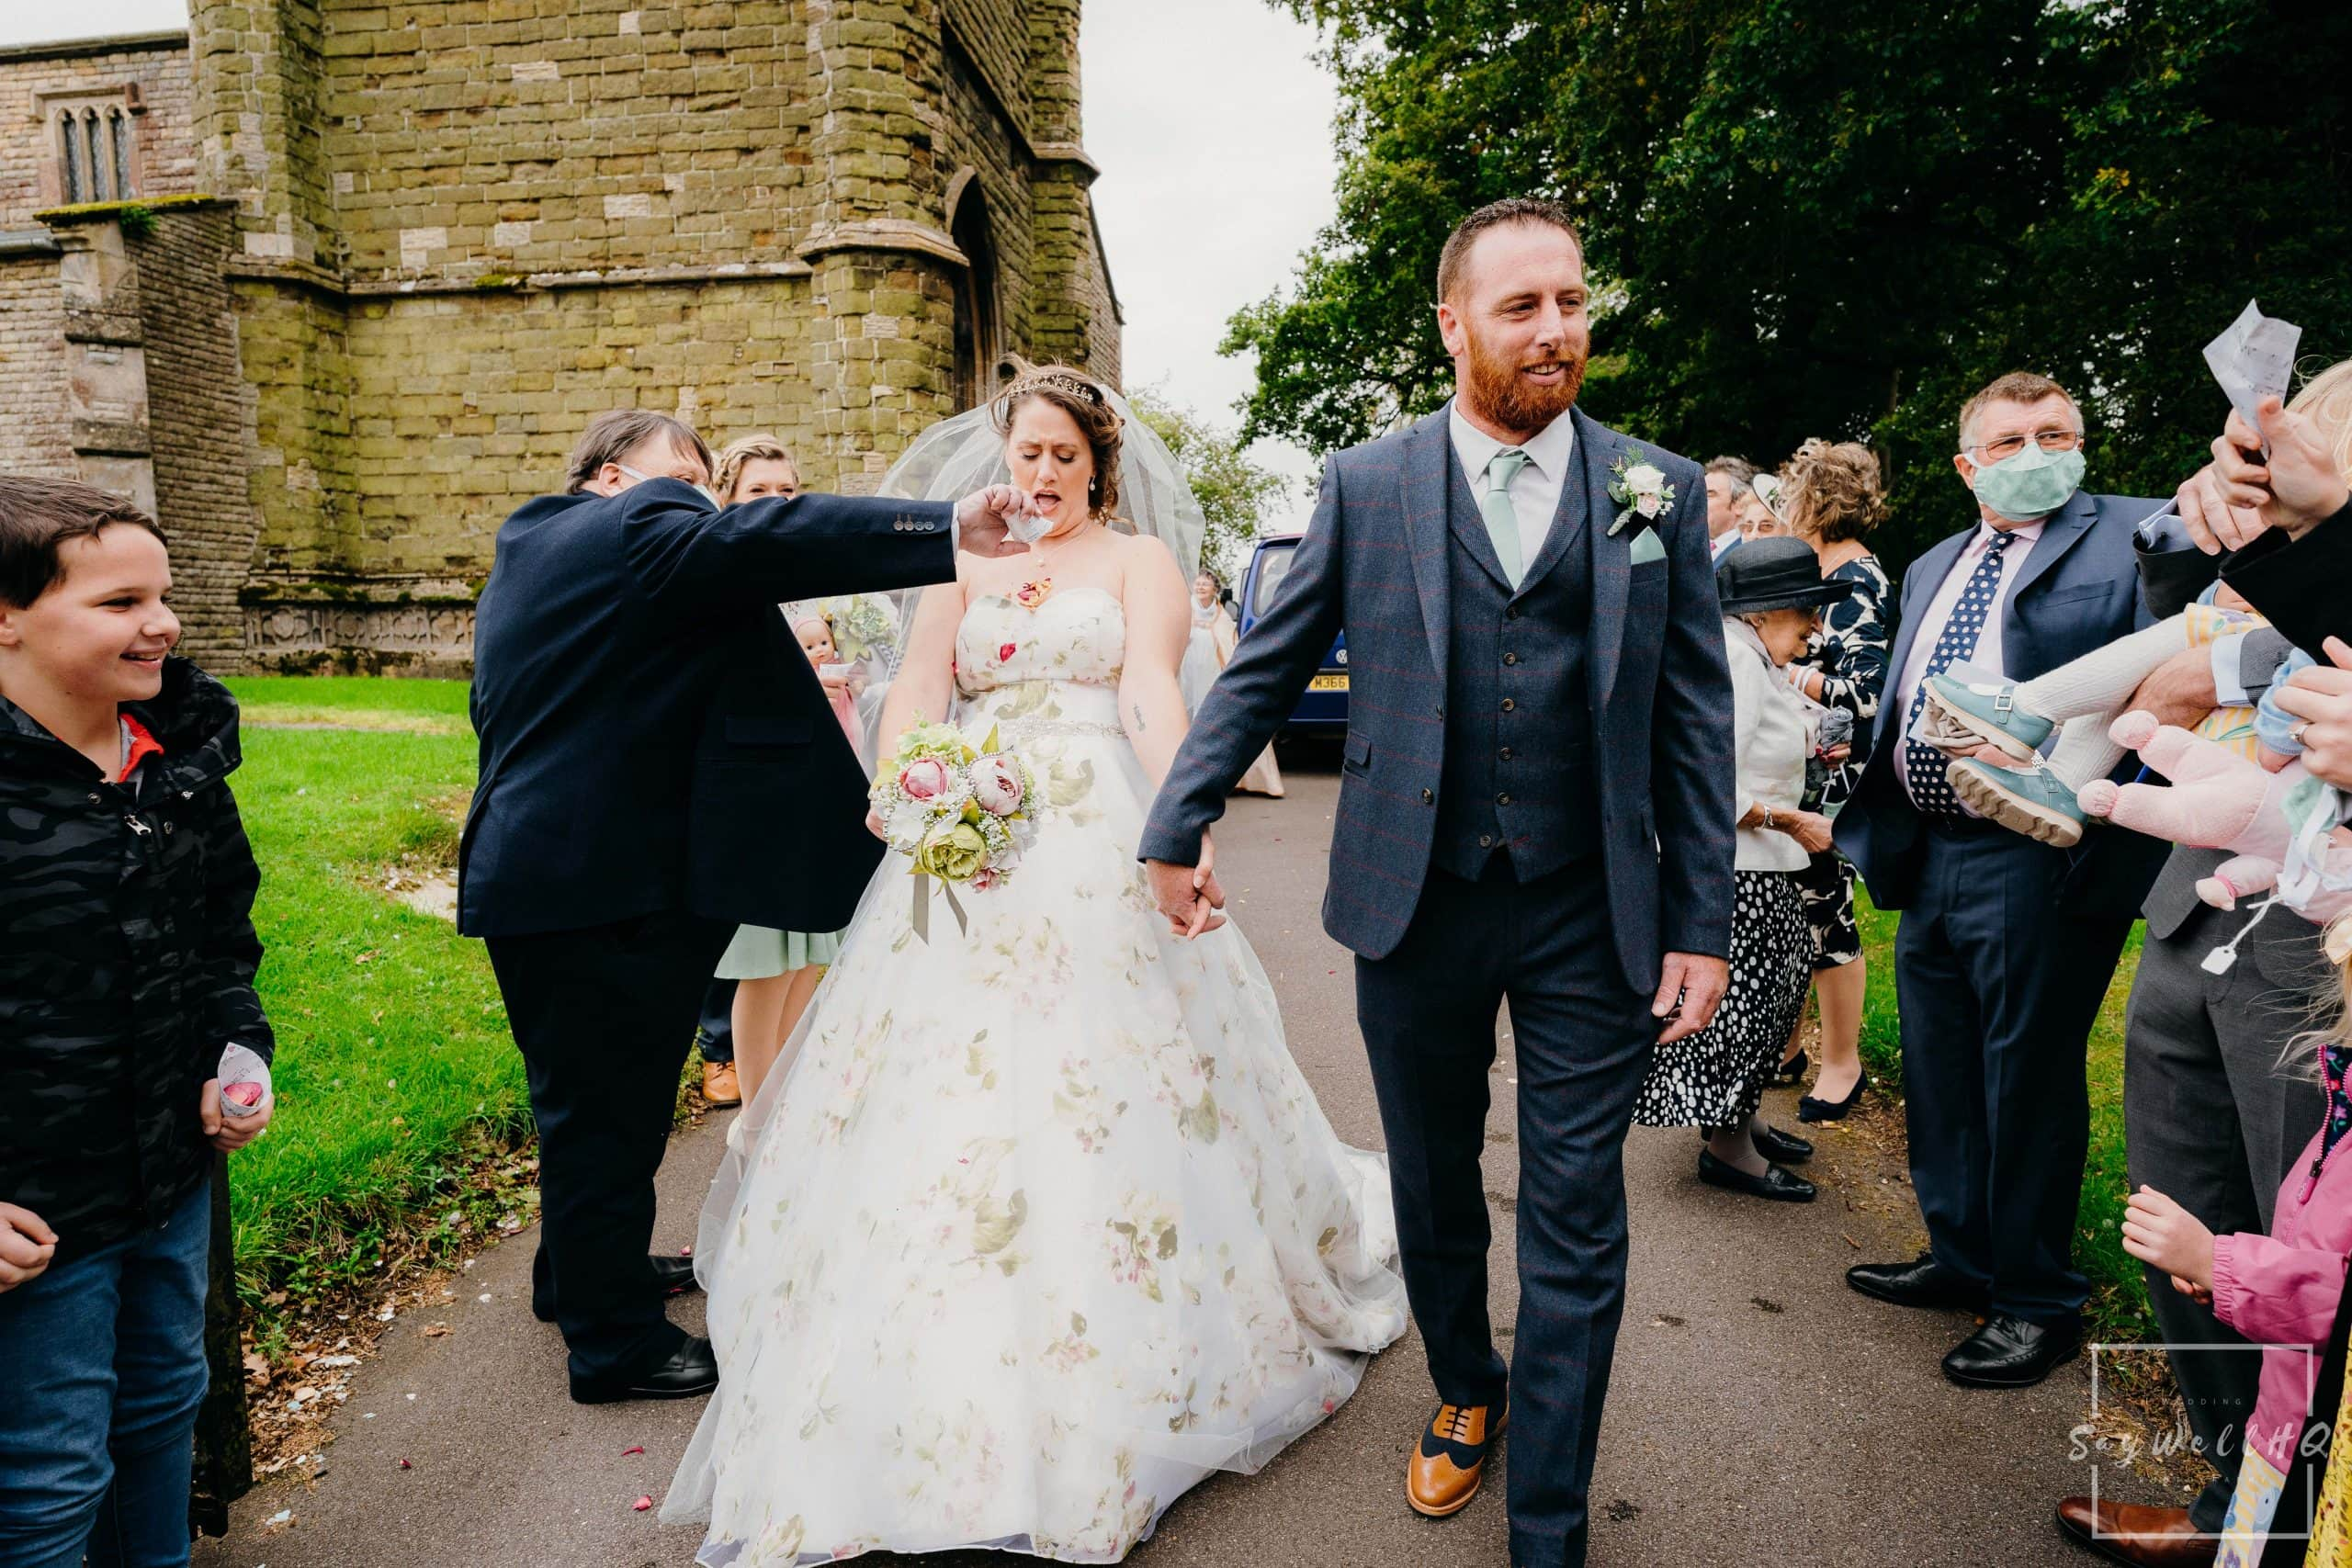 Lincoln wedding photographer - bride and groom get covered in confetti following their wedding in Spilsby in Lincolnshire